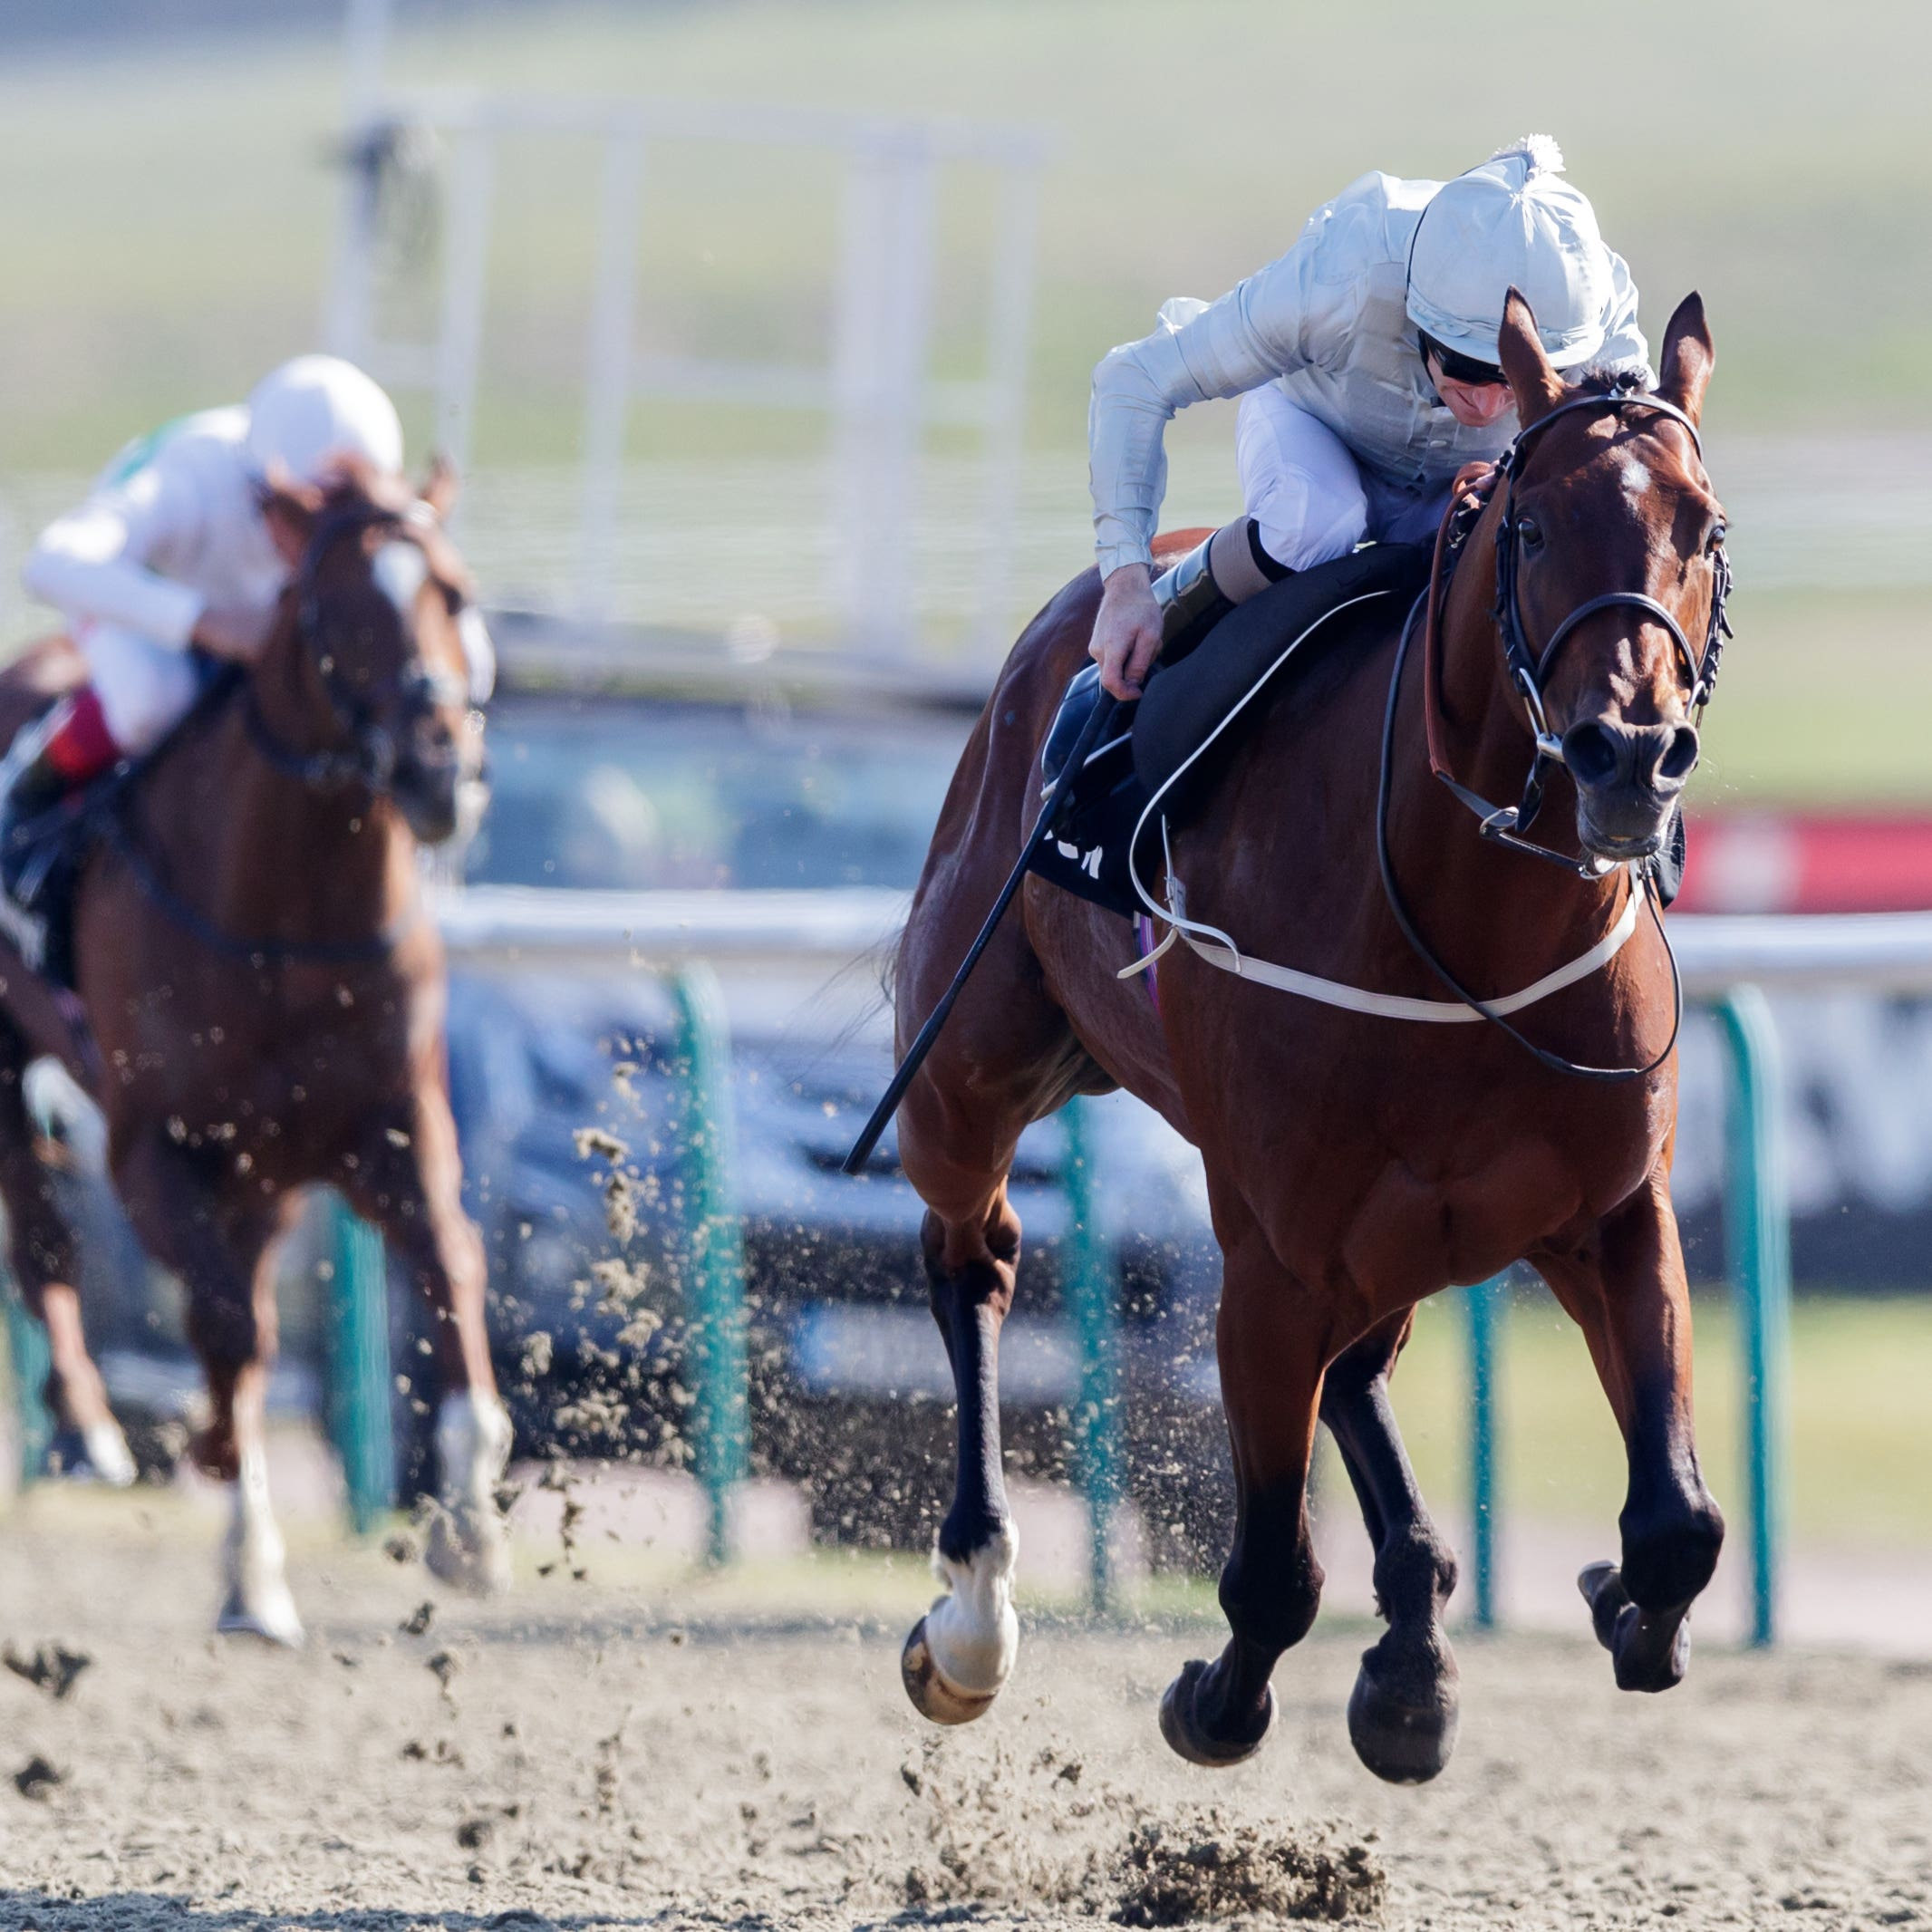 Matterhorn seals an impressive victory in the Betway Easter Classic at Lingfield